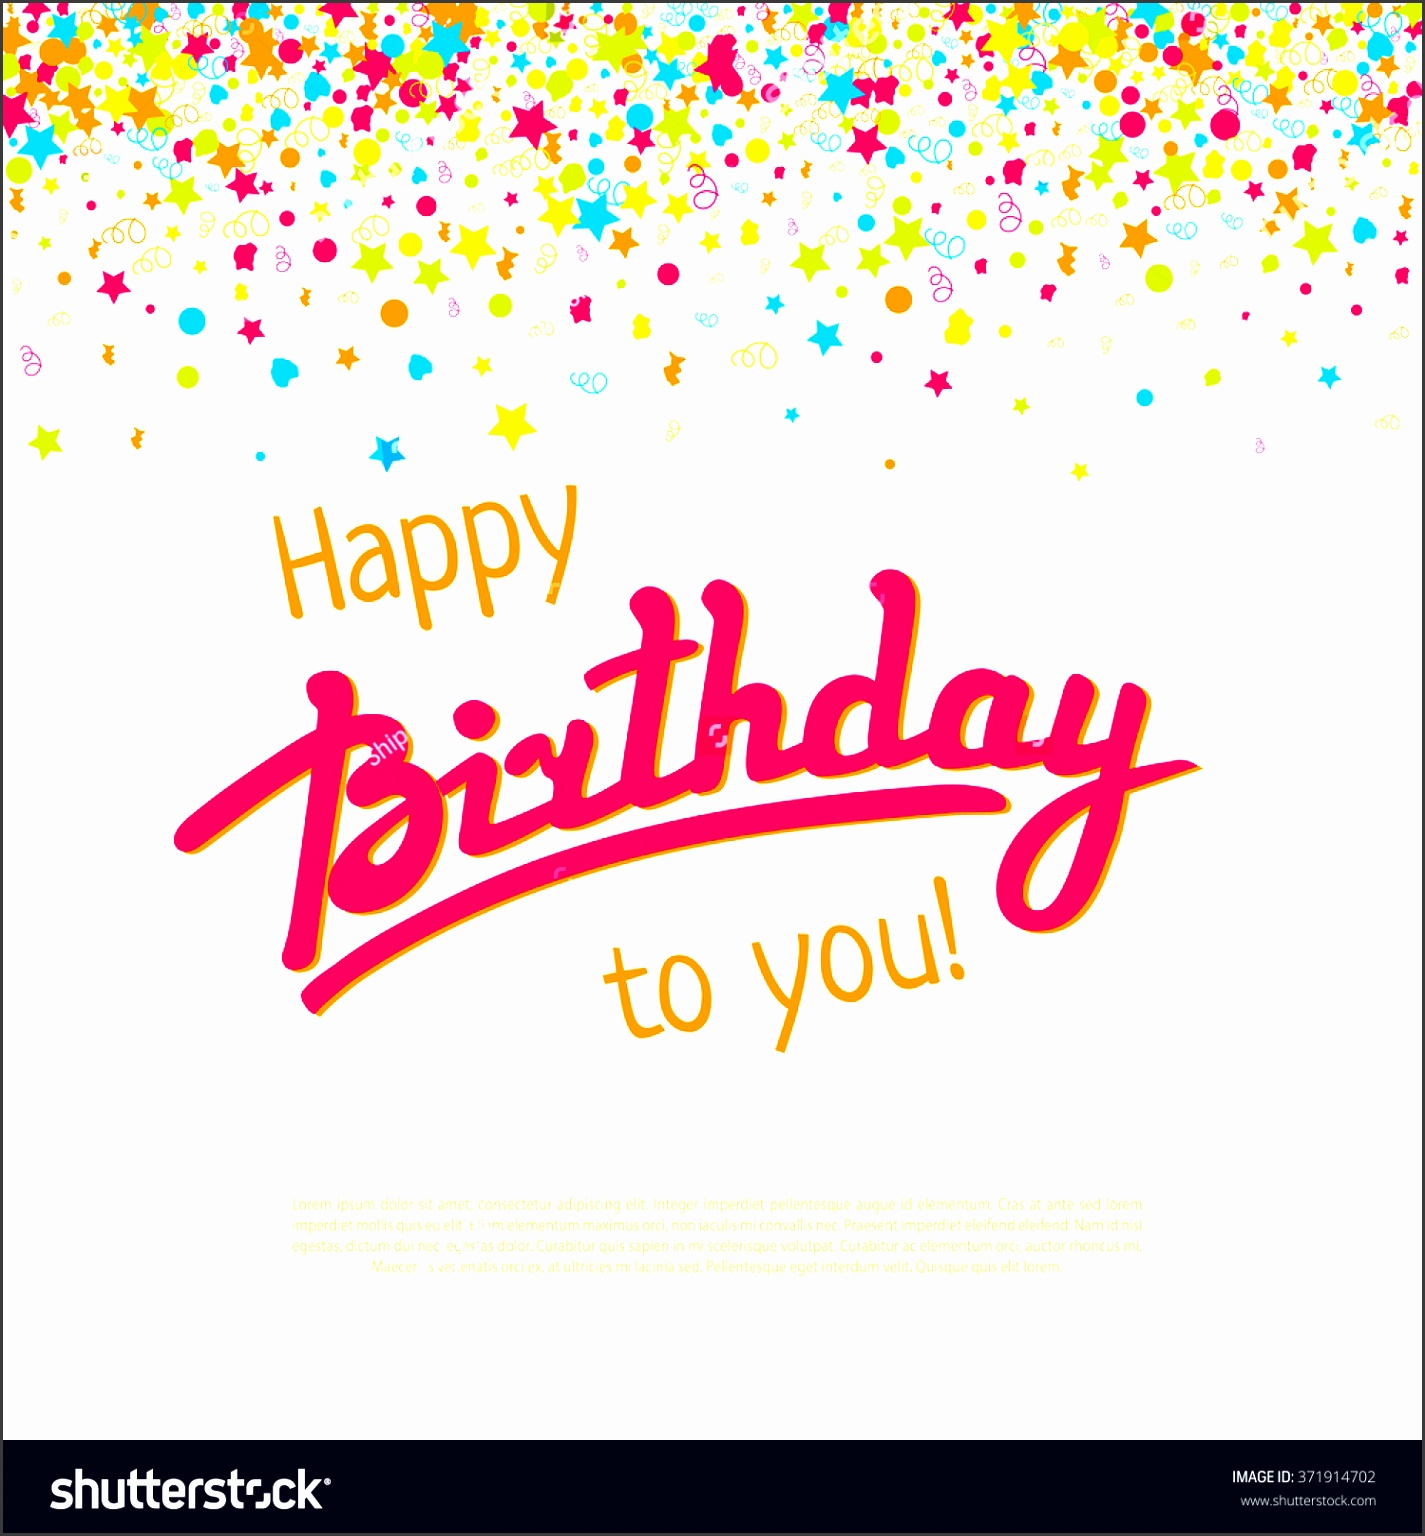 happy birthday greeting card templatector lettering and failing confetti background decoration for carnival